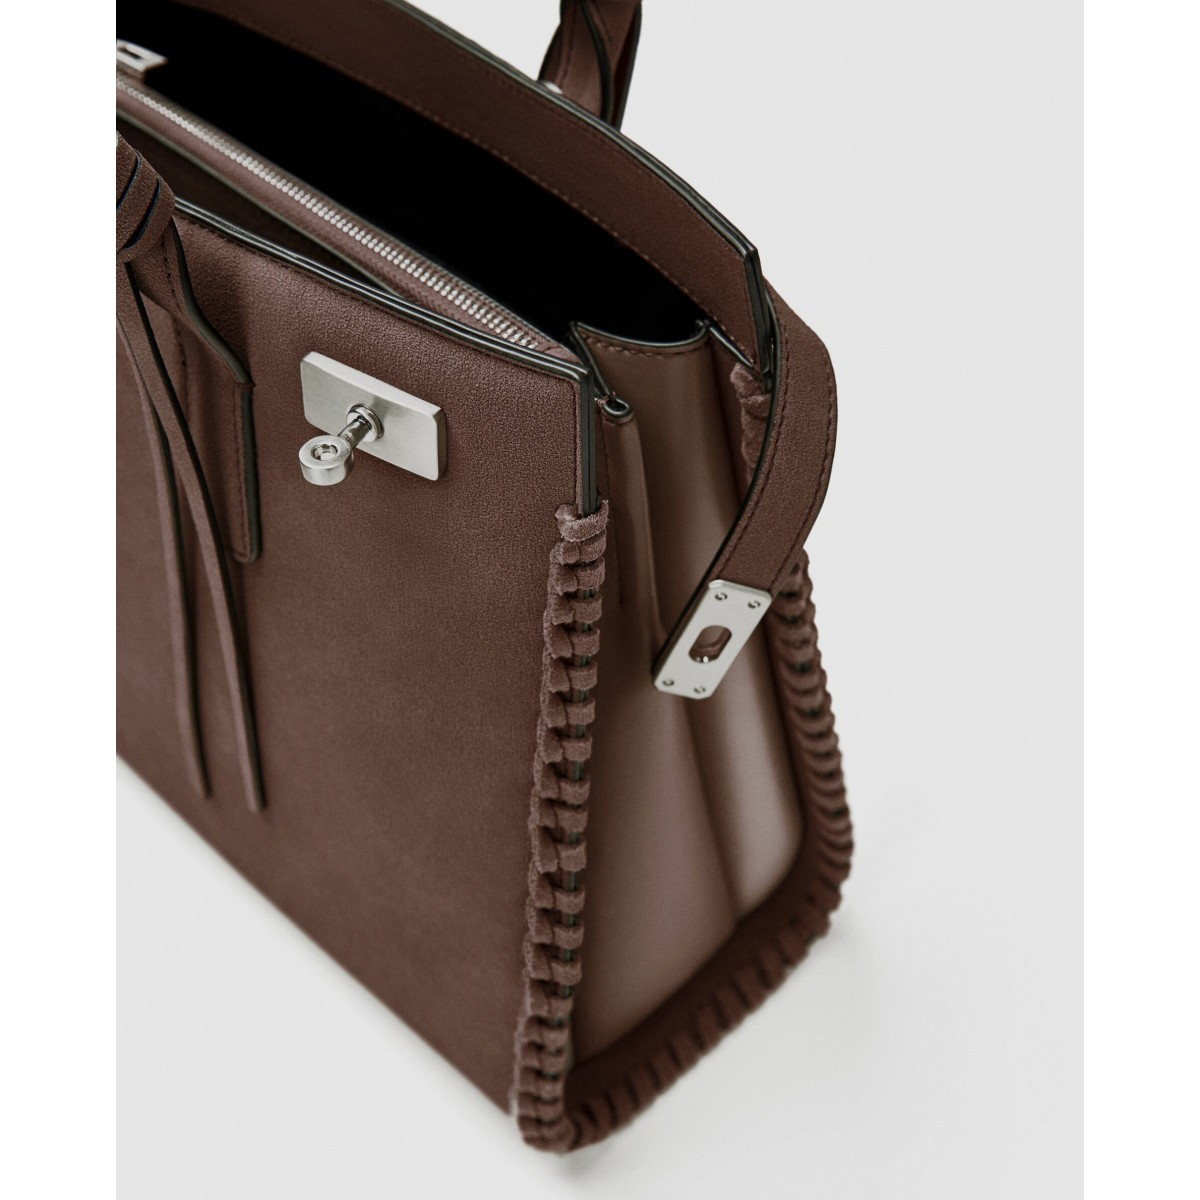 Zara Earth City Bag With Stitched Detailing Leather